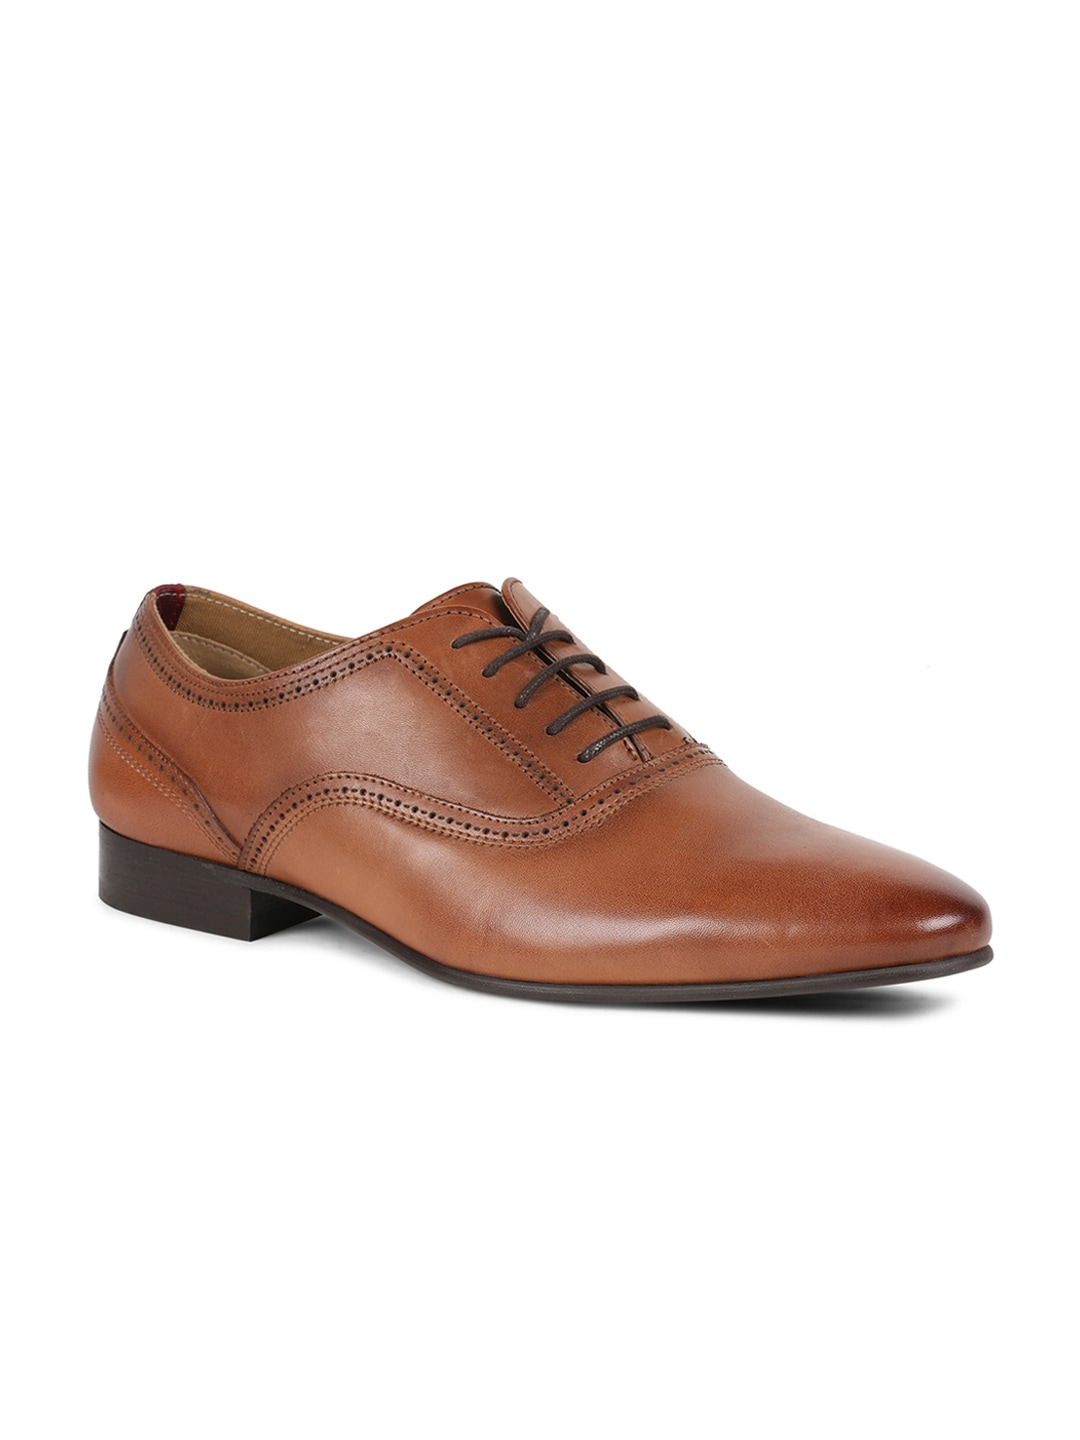 a61739b8b43a6c Brown Shoes - Buy Brown Shoes Online in India